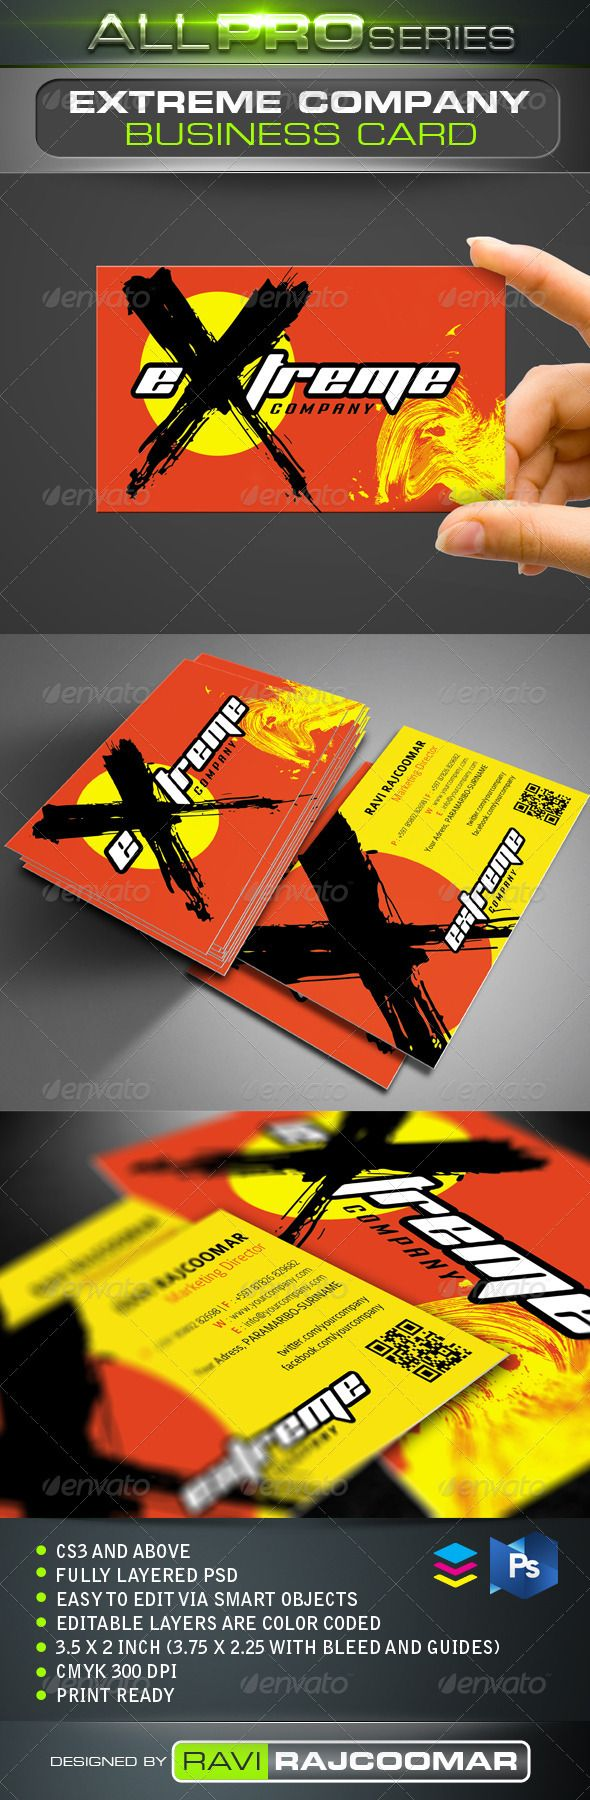 Extreme Company Business Card Business Cards Business